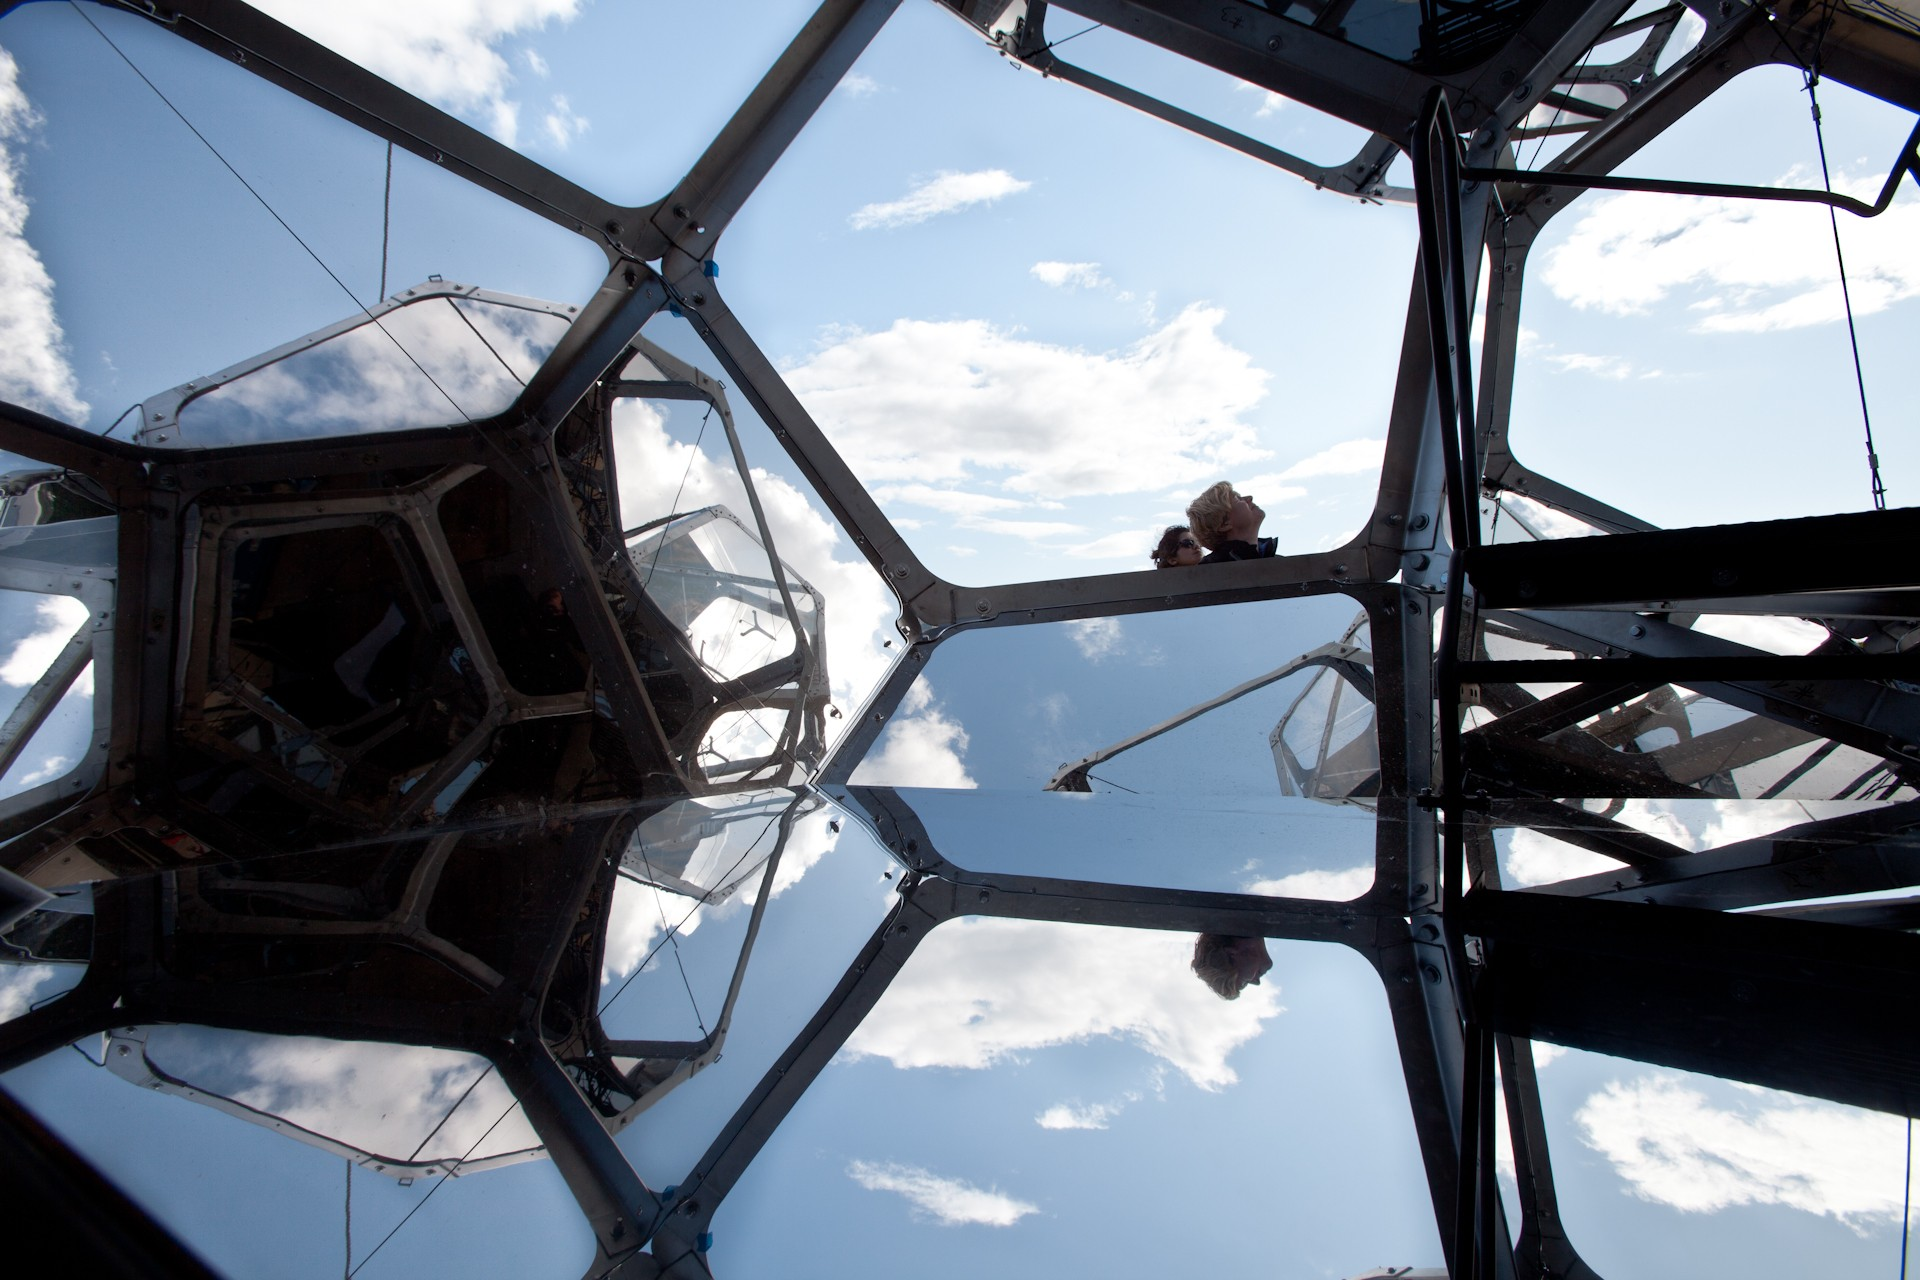 Tomás Saraceno. On the Roof: Cloud City, 2012. Installation view, the Metropolitan Museum of Art, New York. Courtesy the artist and Tanya Bonakdar Gallery, New York. © Photography by Studio Tomás Saraceno, 2012